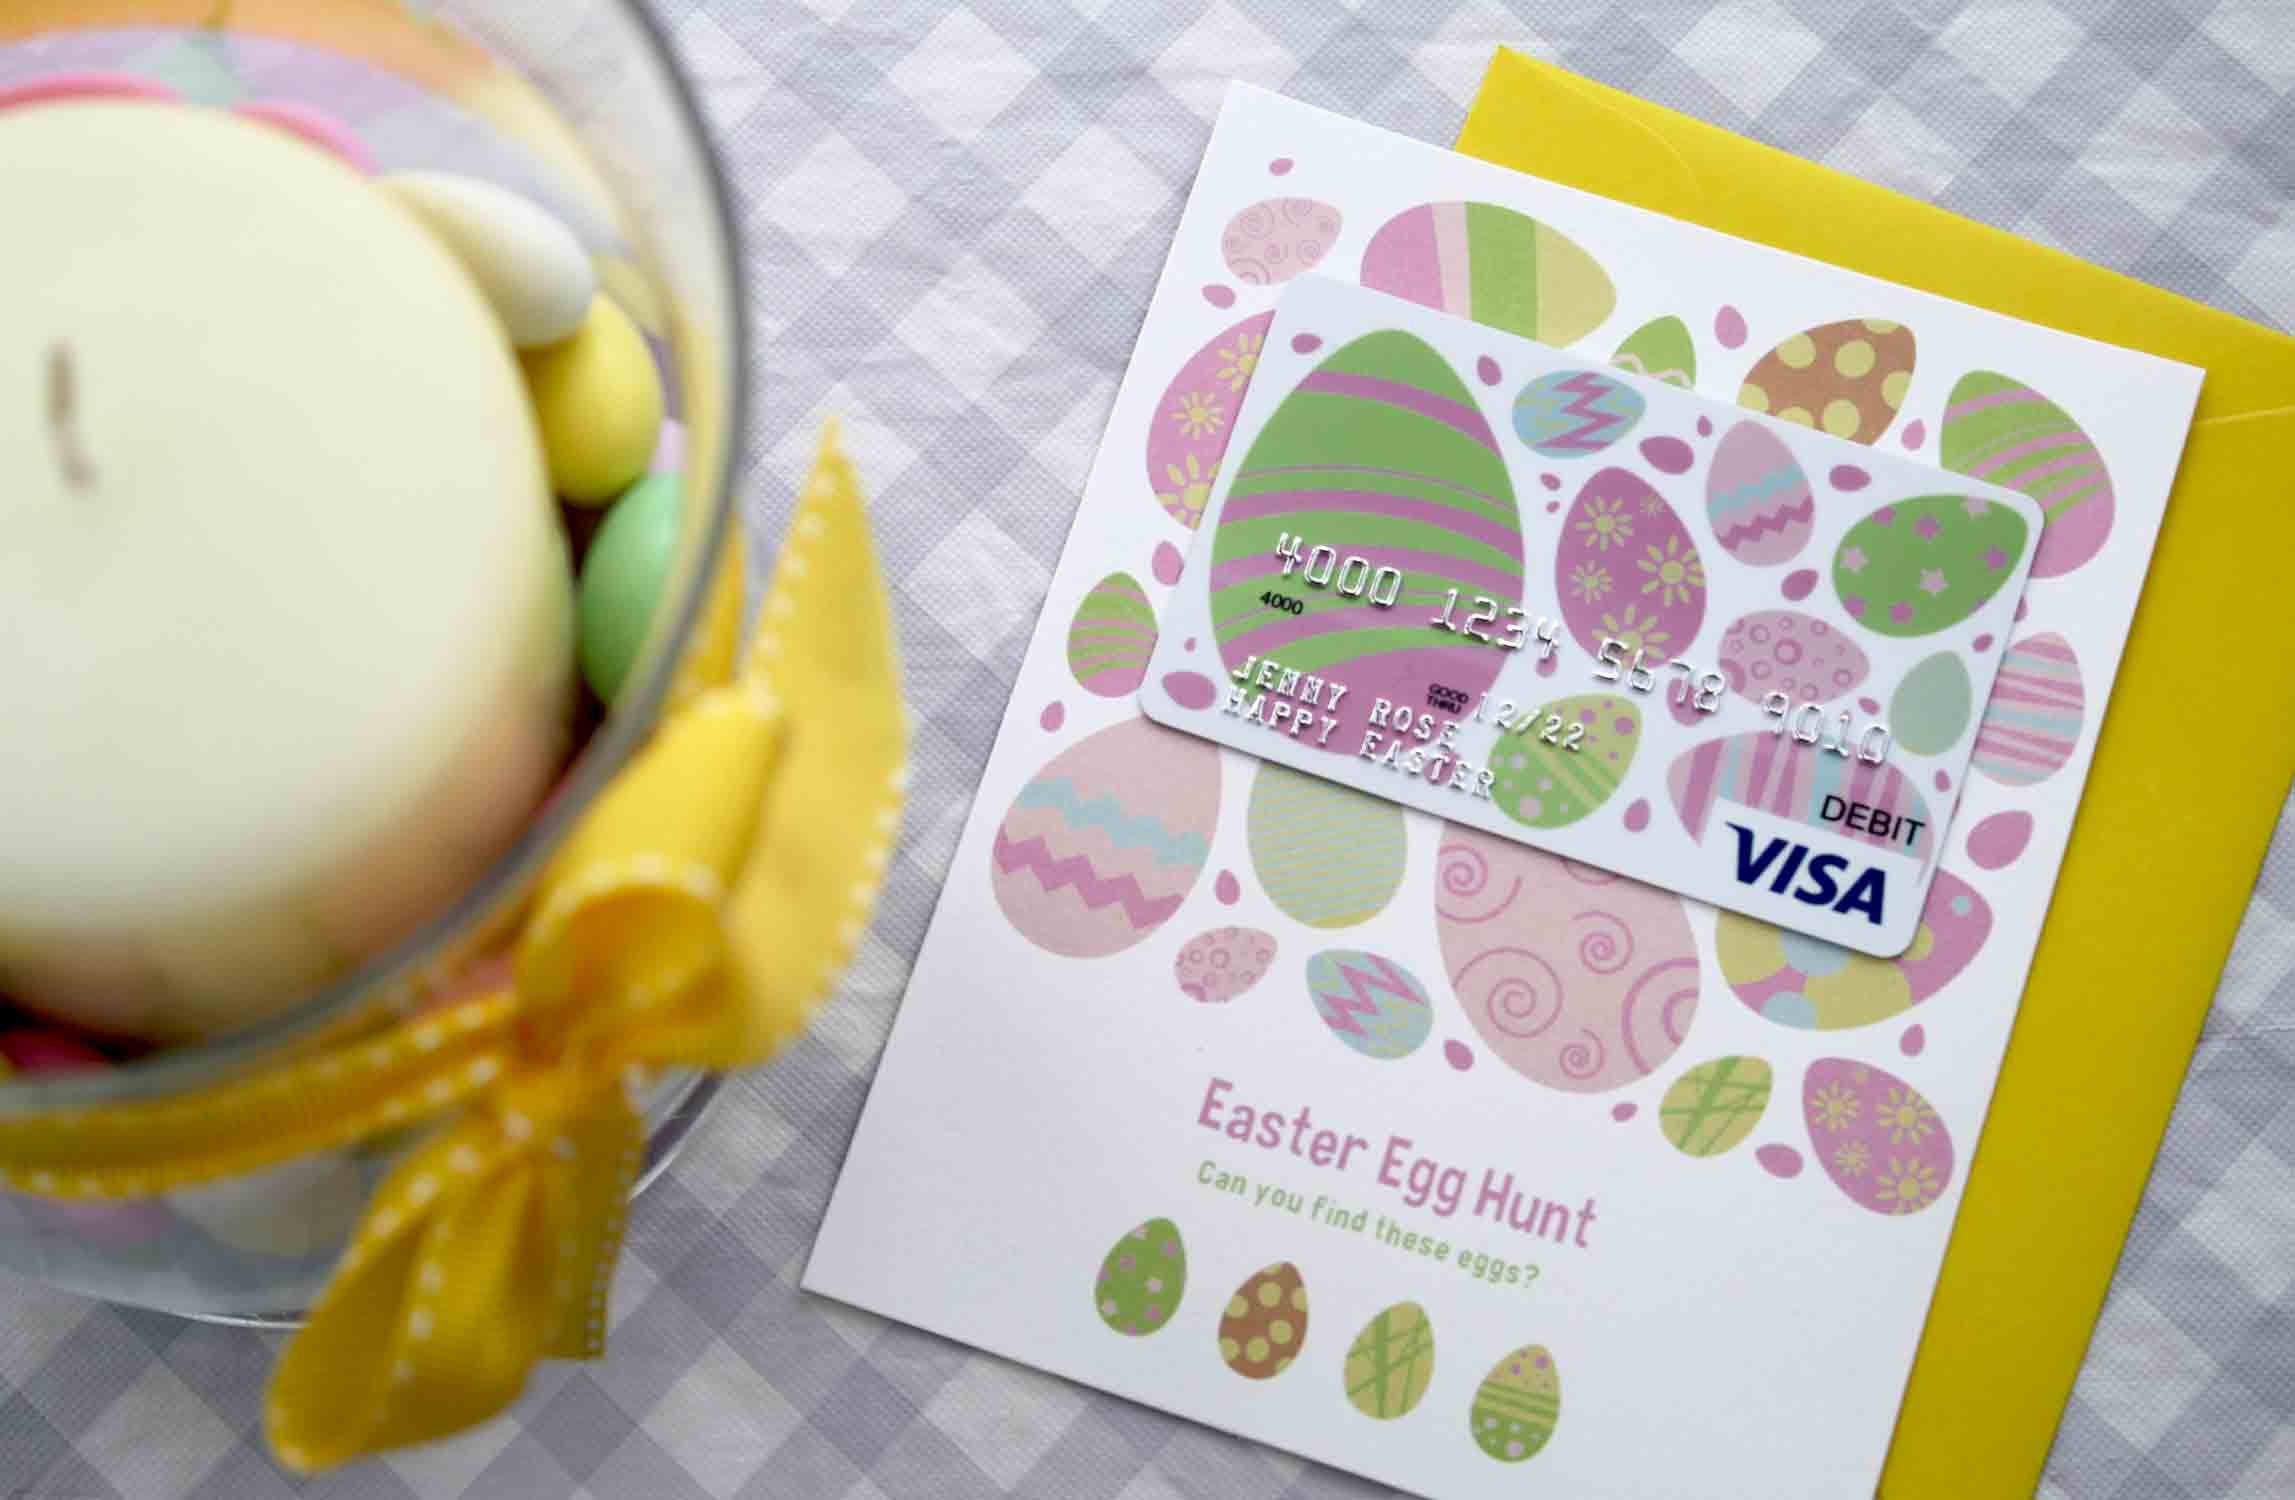 Free printable gift card holder is an easter egg hunt gcg finished flat gift card holder negle Choice Image